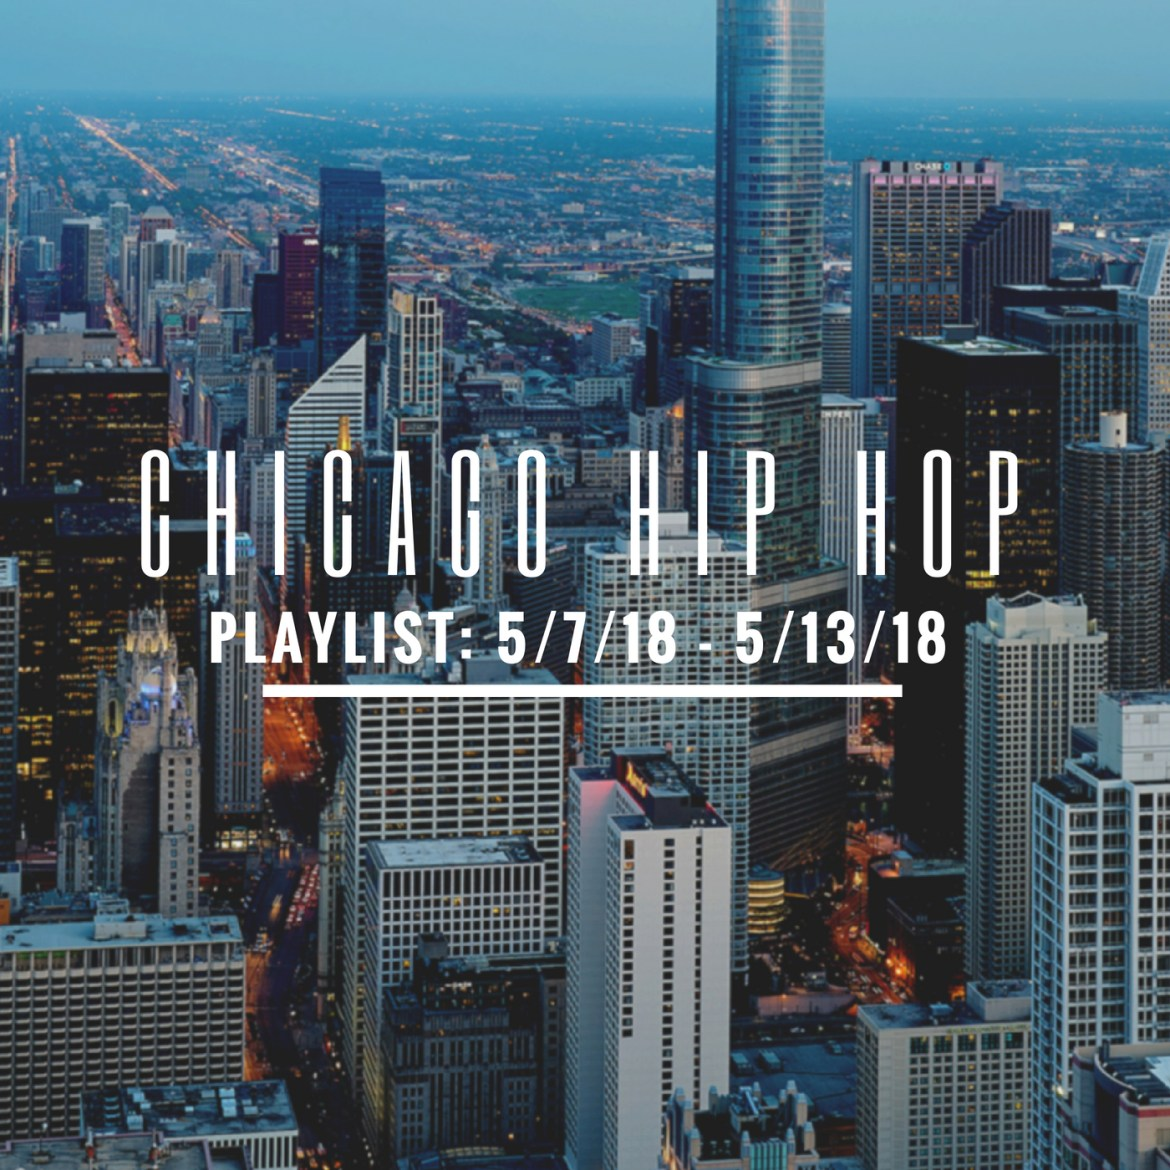 Chicago Hip Hop Playlist: 5/7/18-5/13/18